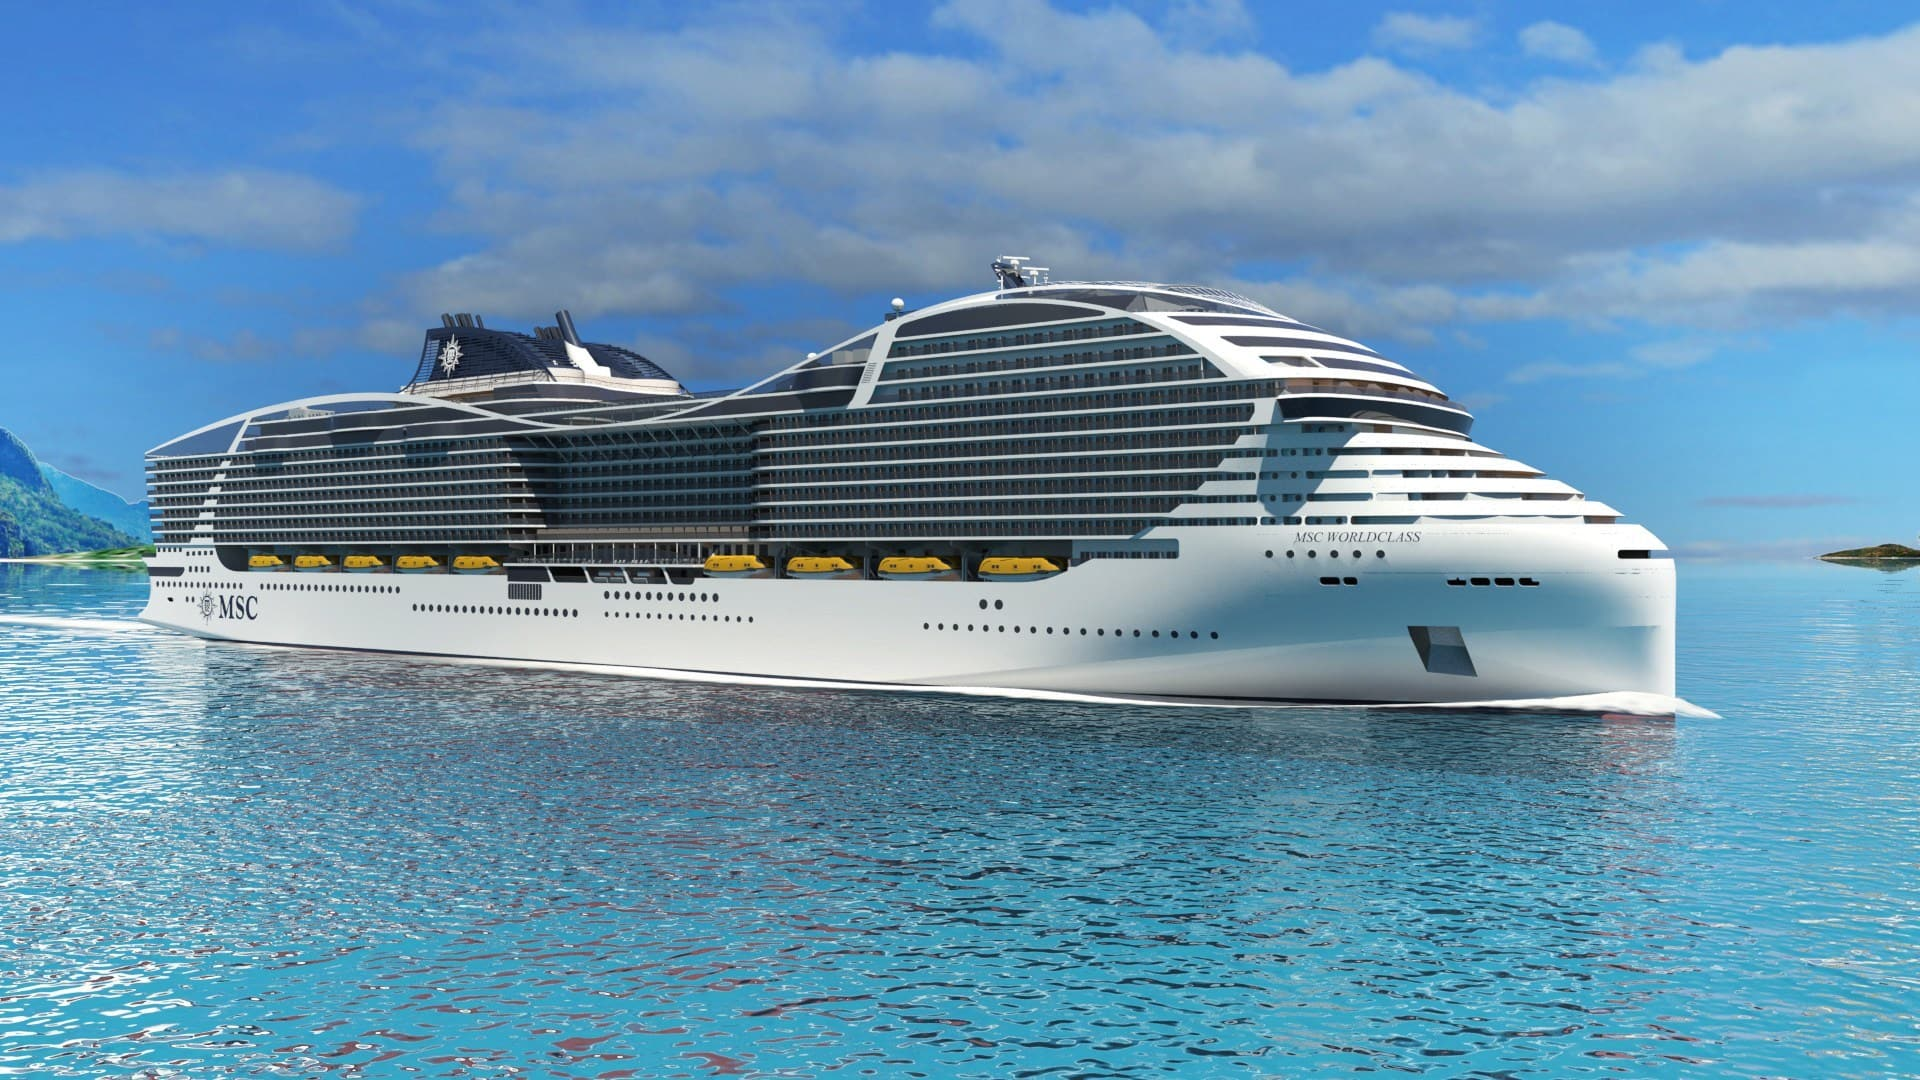 Read more about the article projects where we are adding stars: msc world europa